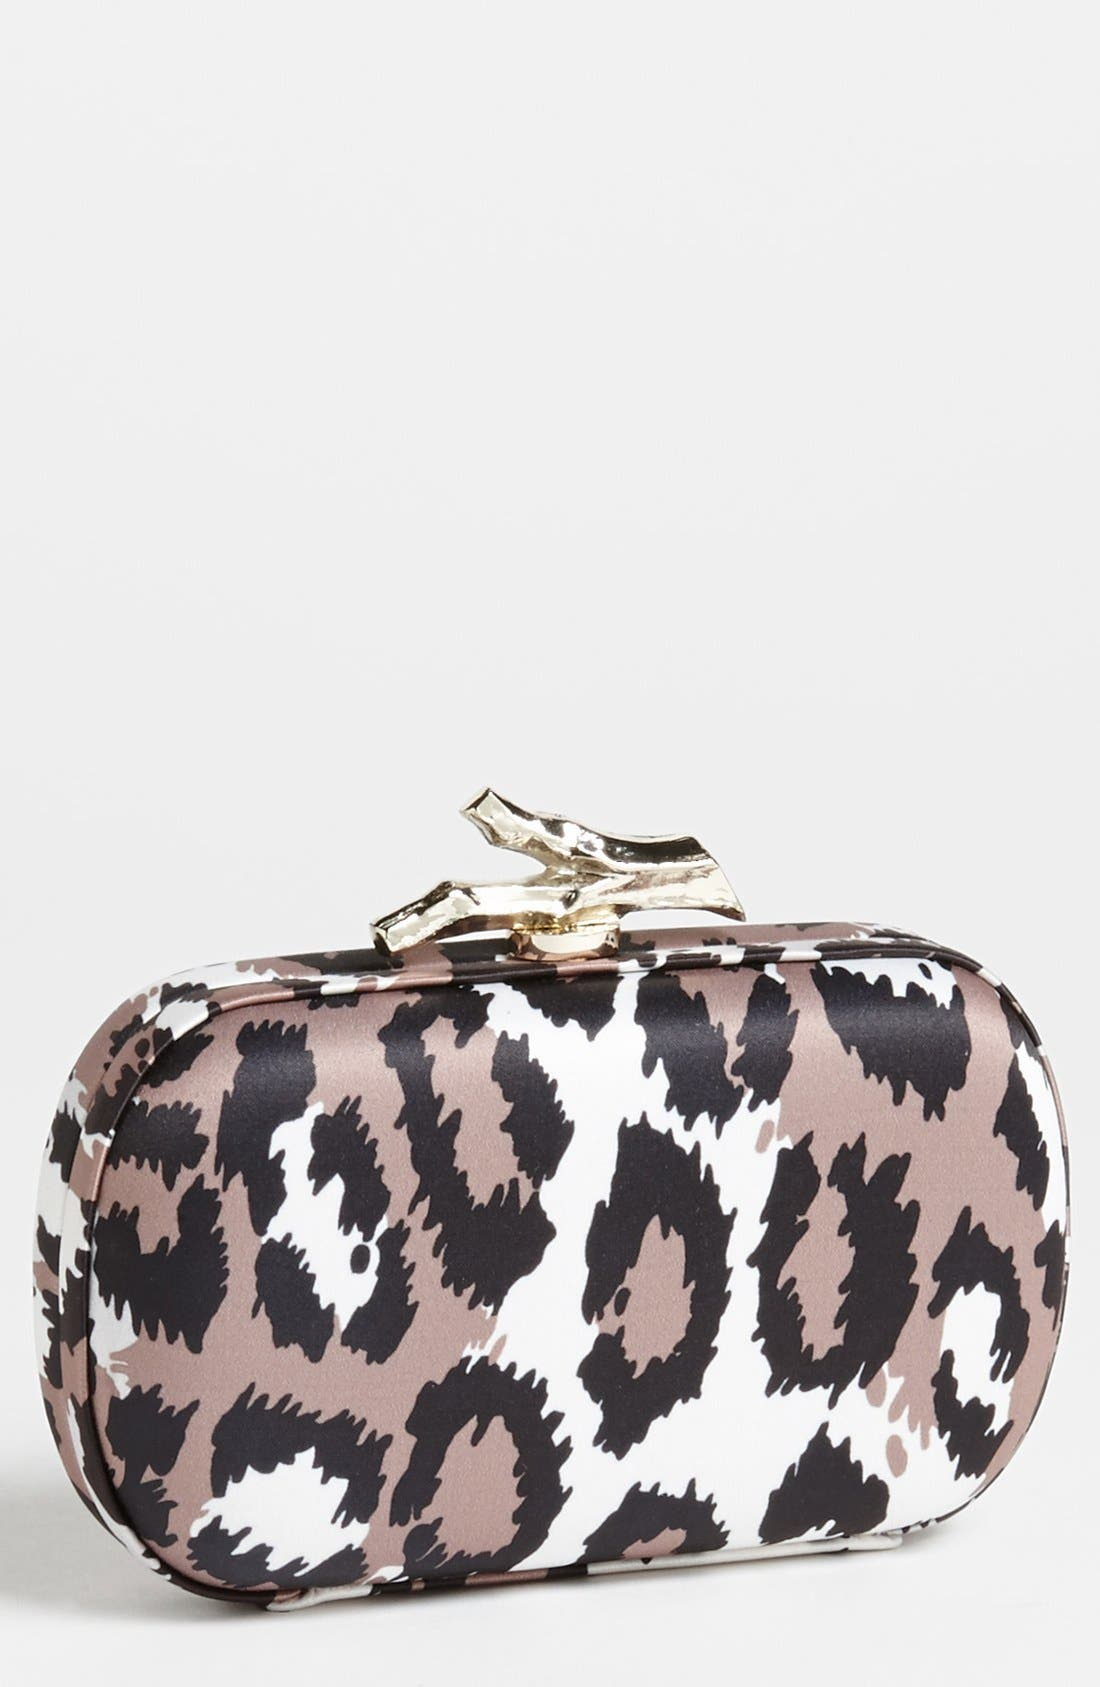 Alternate Image 1 Selected - Diane von Furstenberg 'Lytton' Leopard Print Satin Clutch